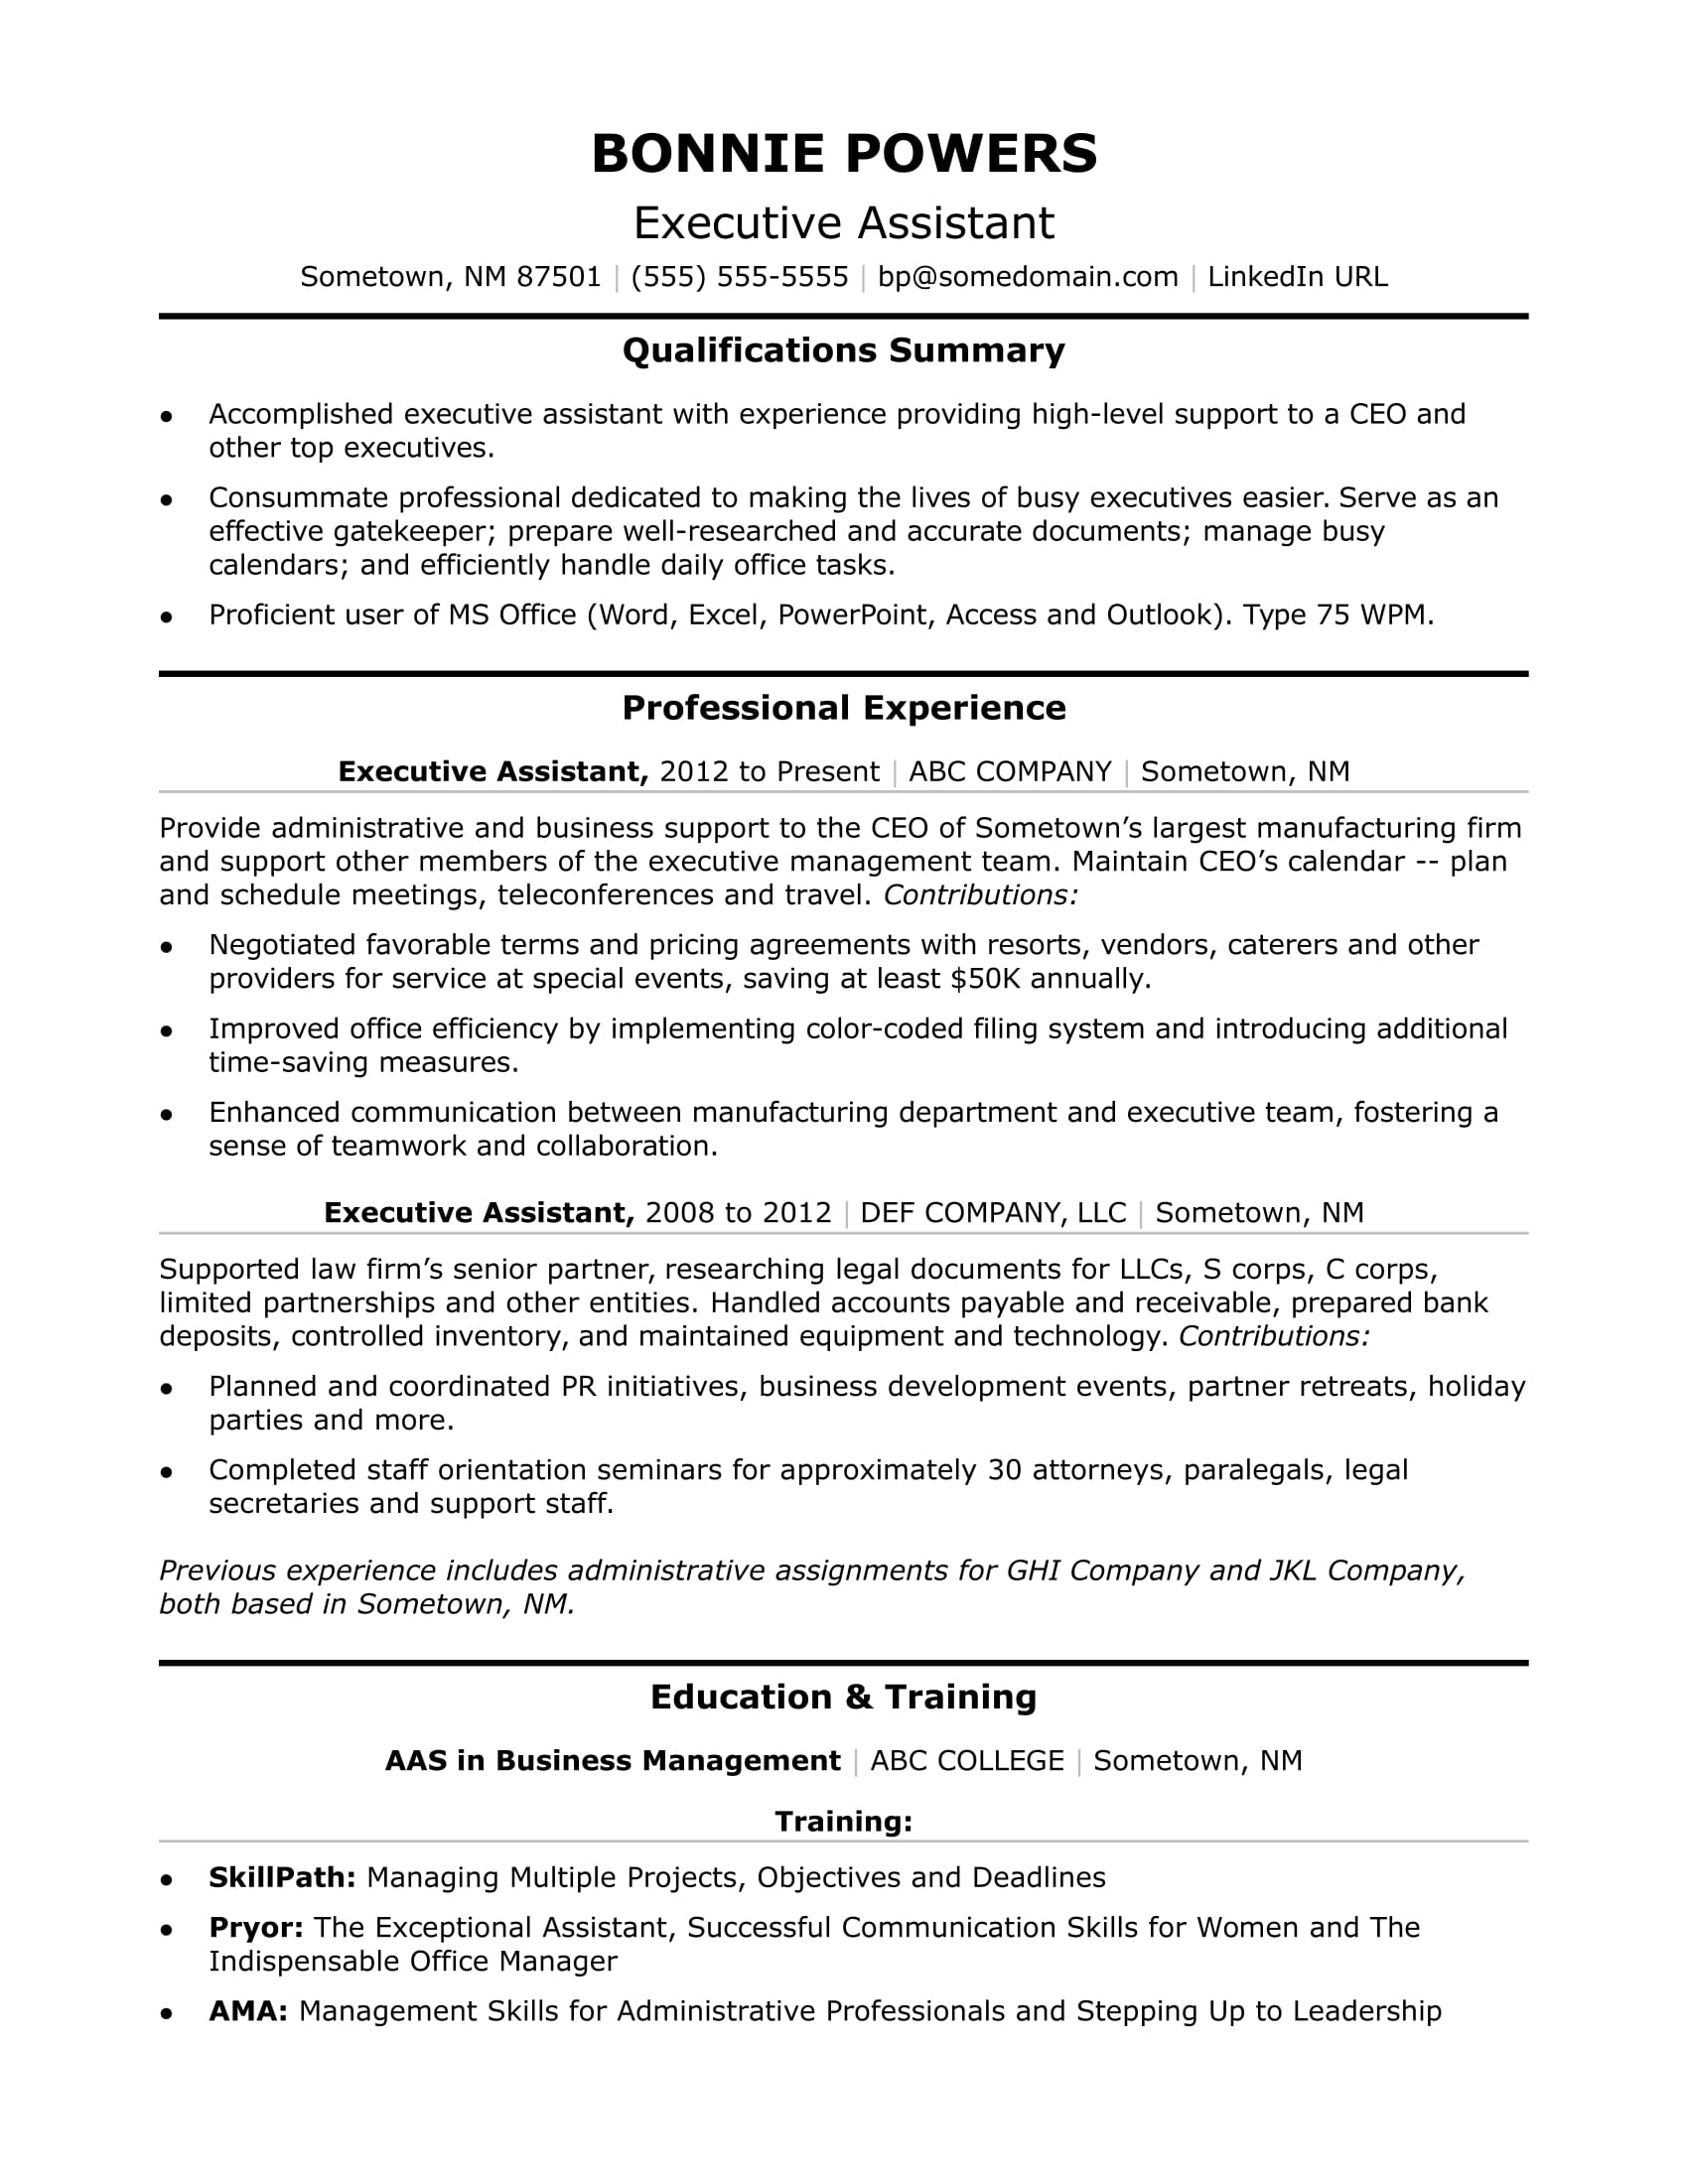 executive administrative assistant resume sample monster best for position selenium years Resume Best Resume For Administrative Position